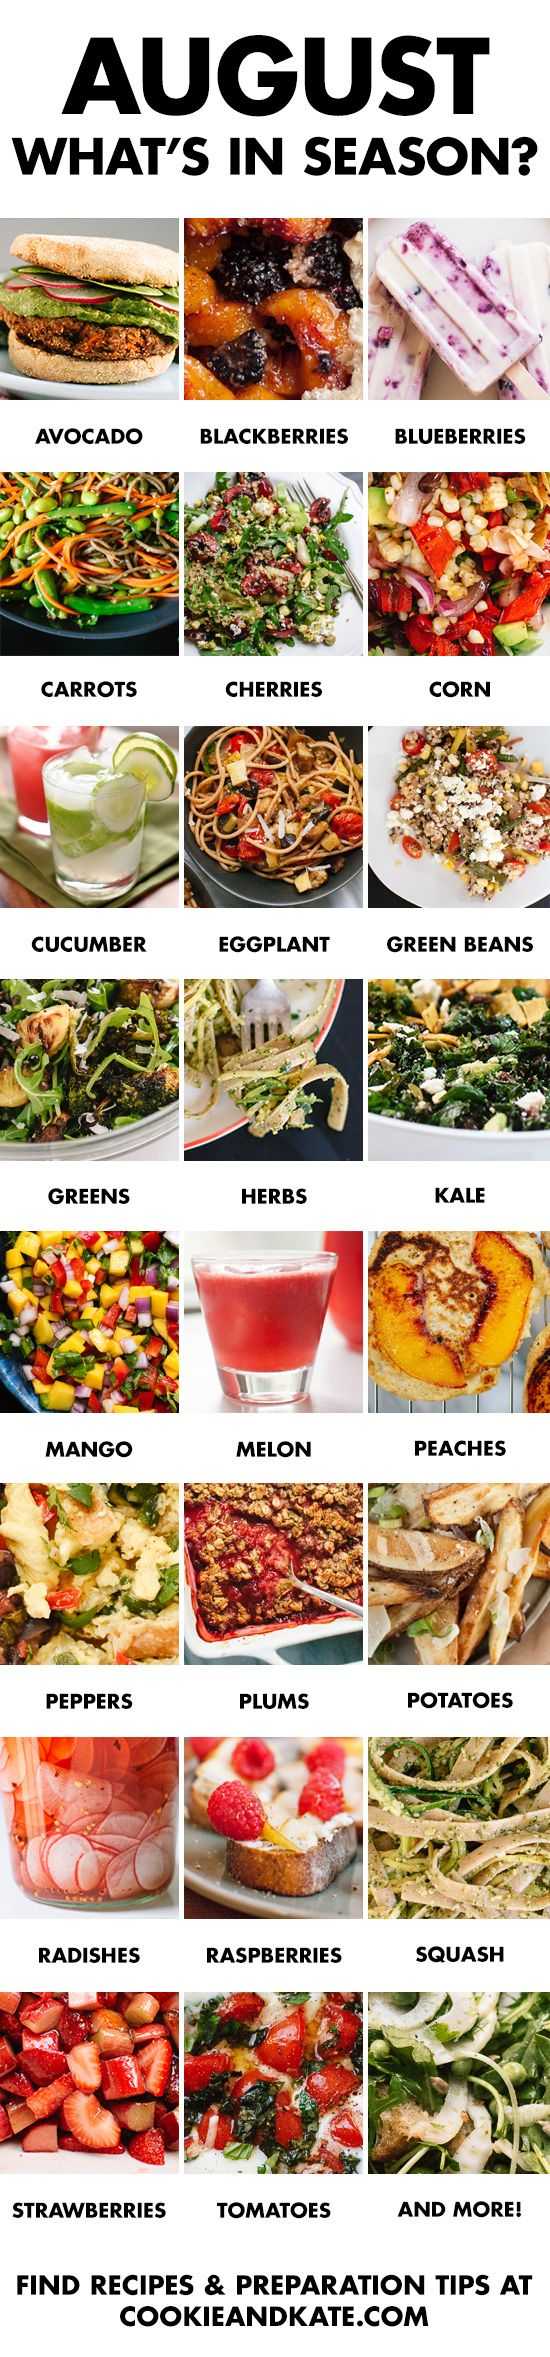 August What Foods Are In Season Discover More Ways To Live Connected The